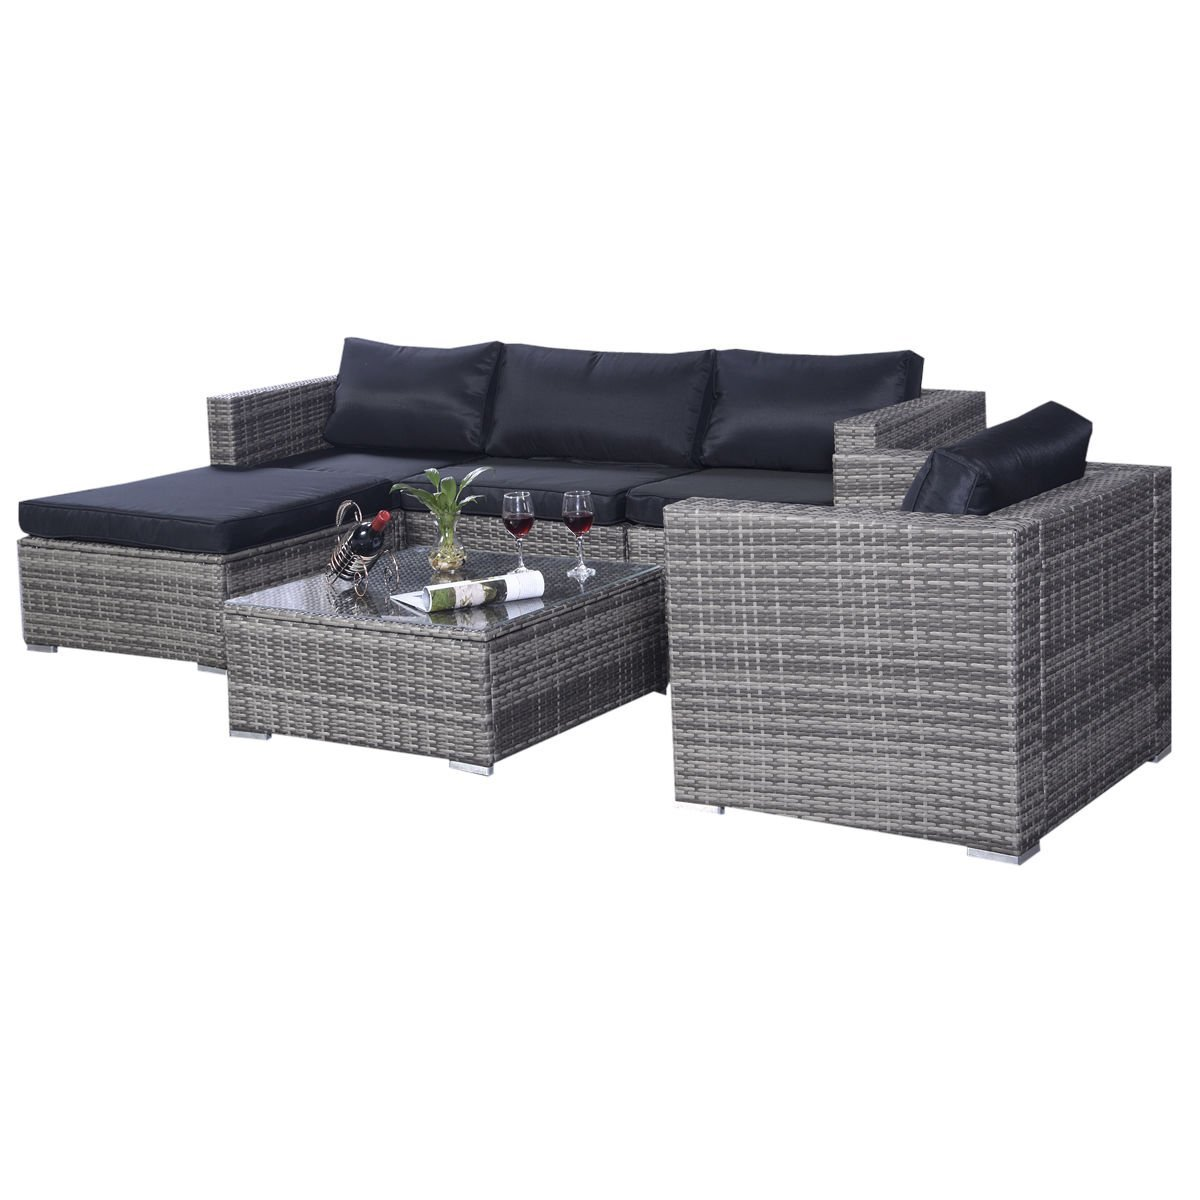 rattan outdoor furniture covers. amazoncom tangkula 6pc furniture set aluminum patio sofa pe gray rattan couch 2 cushion covers lawn u0026 garden outdoor r